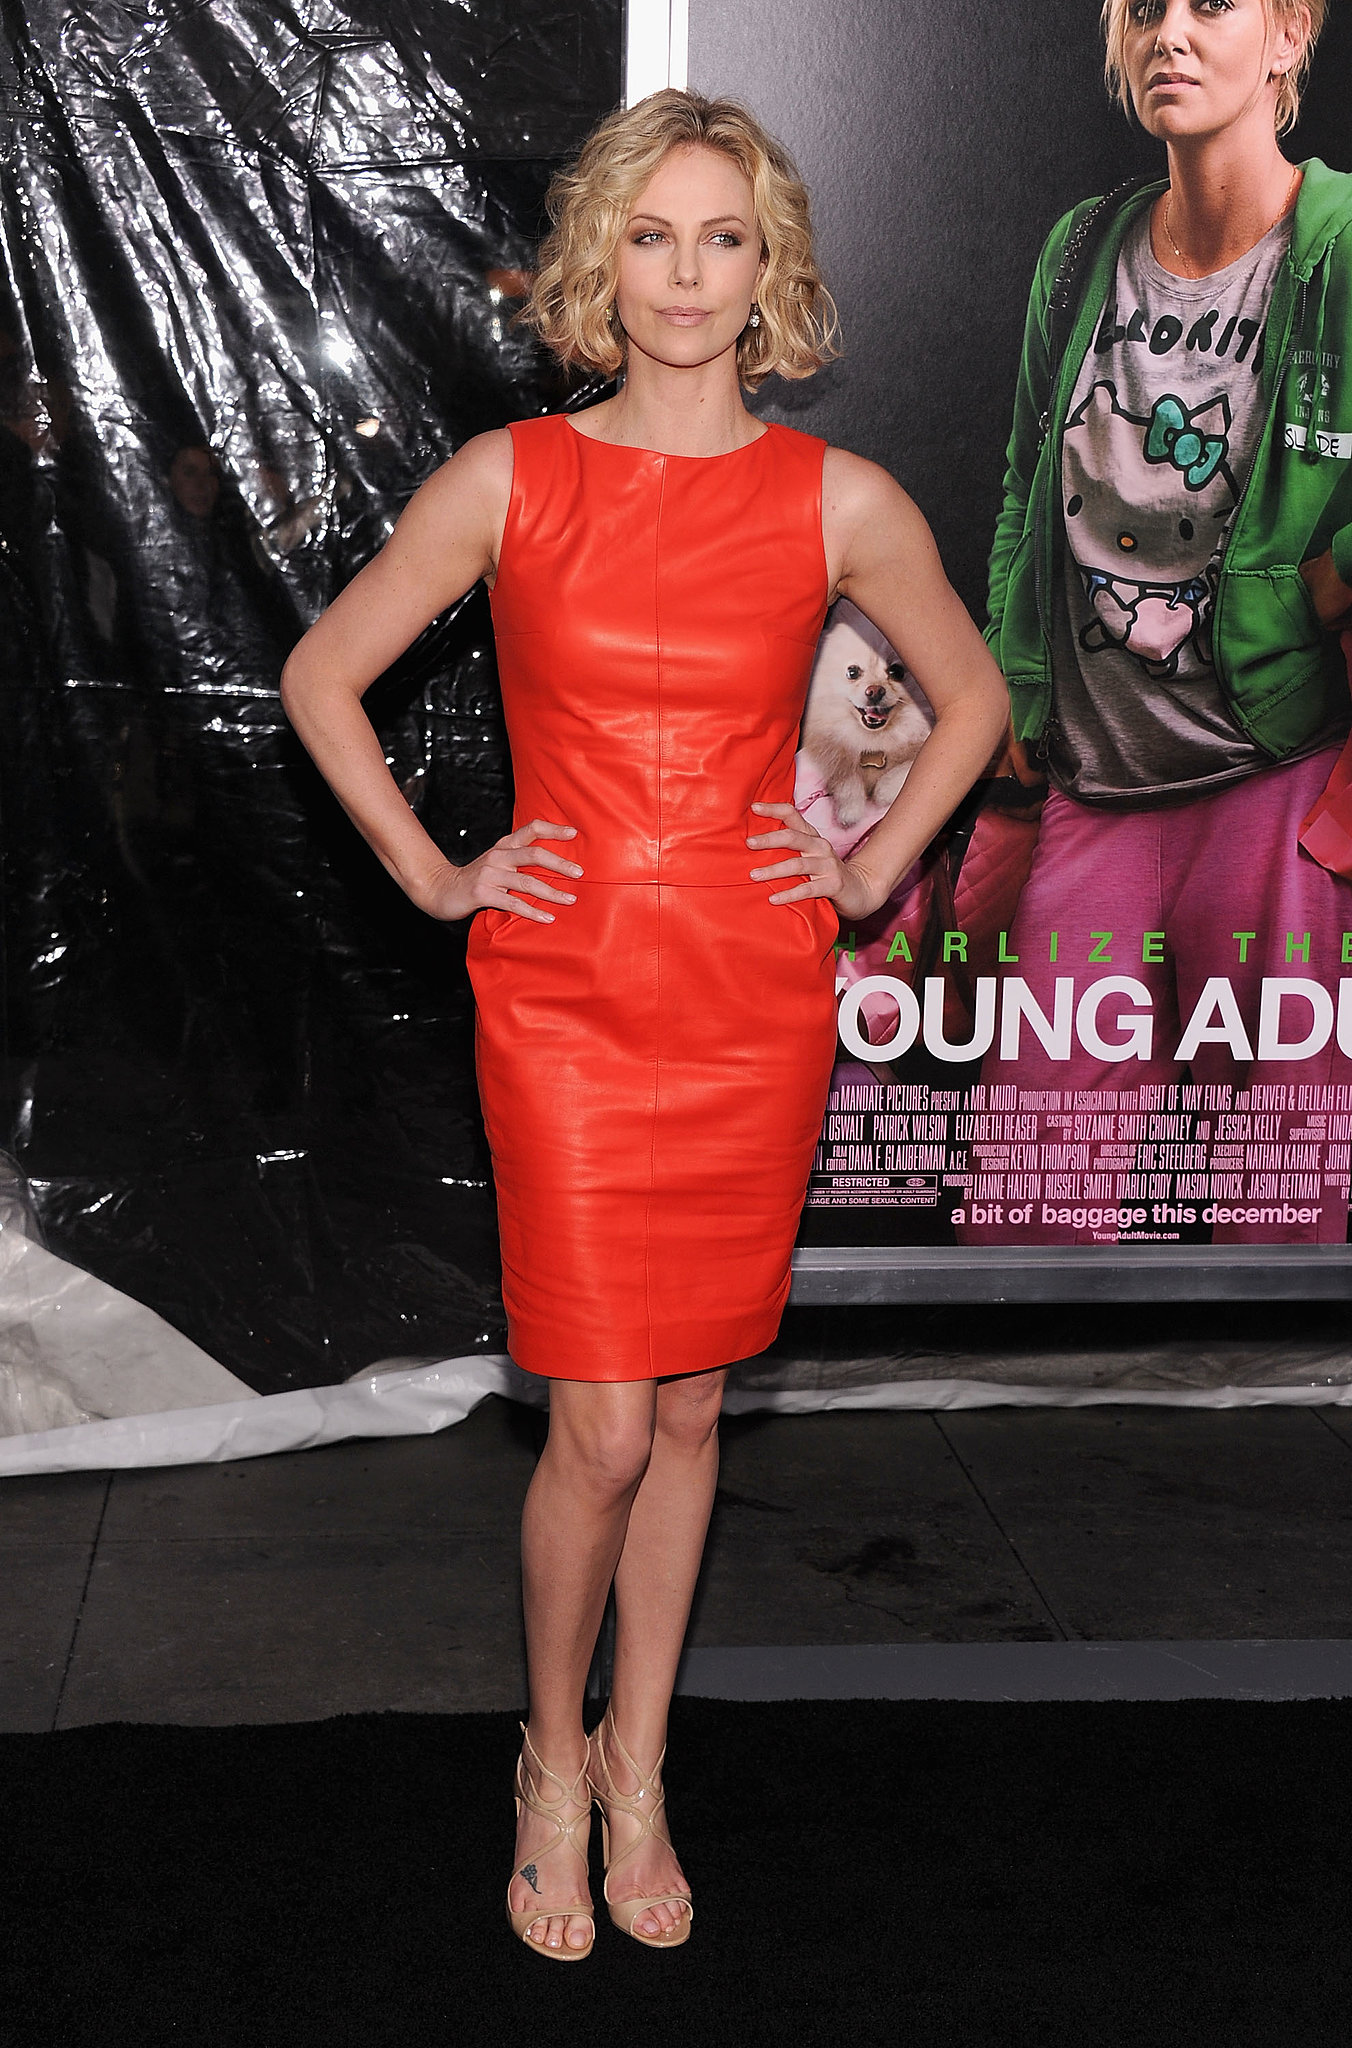 Va-va-voom! Charlize stunned in a siren red Dior sheath and gold Jimmy Choo sandals at the NYC premiere of Young Adult.